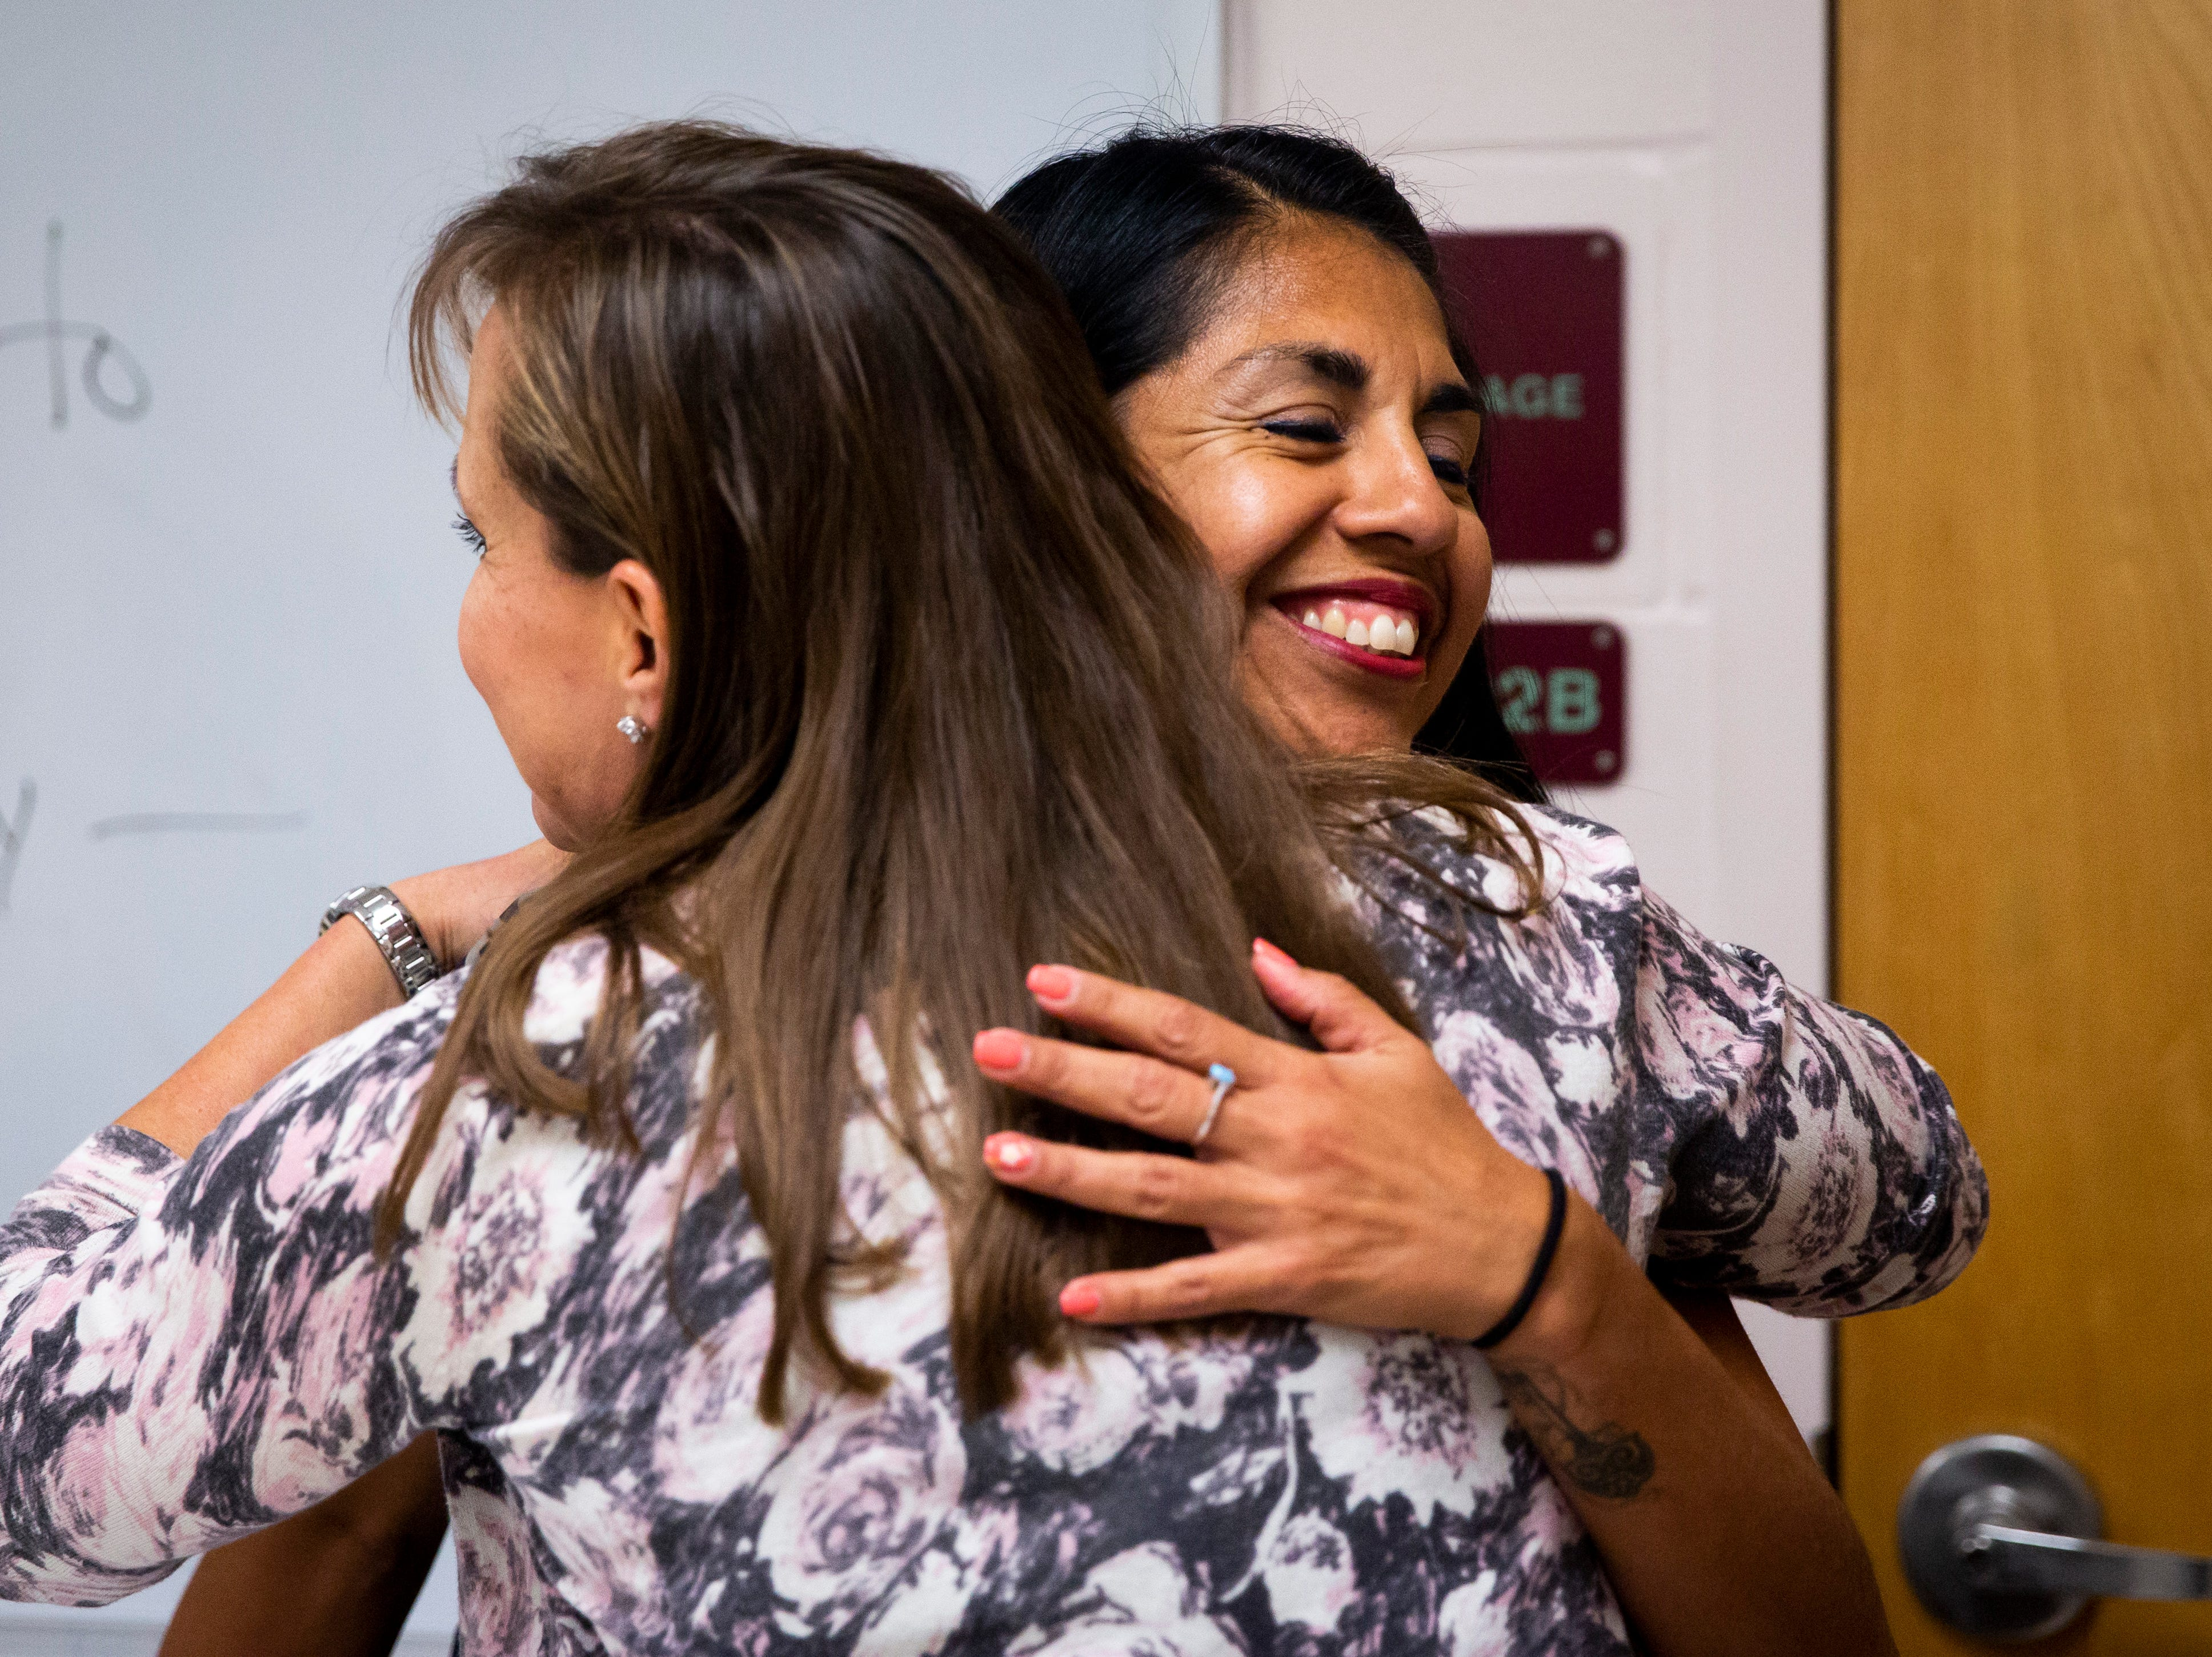 Principal Lynda Walcott hugs Sandy Mendoza after she was presented with a Teachers of Distinction certificate from Champions For Learning on Tuesday, Oct. 30, 2018, at Calusa Park Elementary School in East Naples.